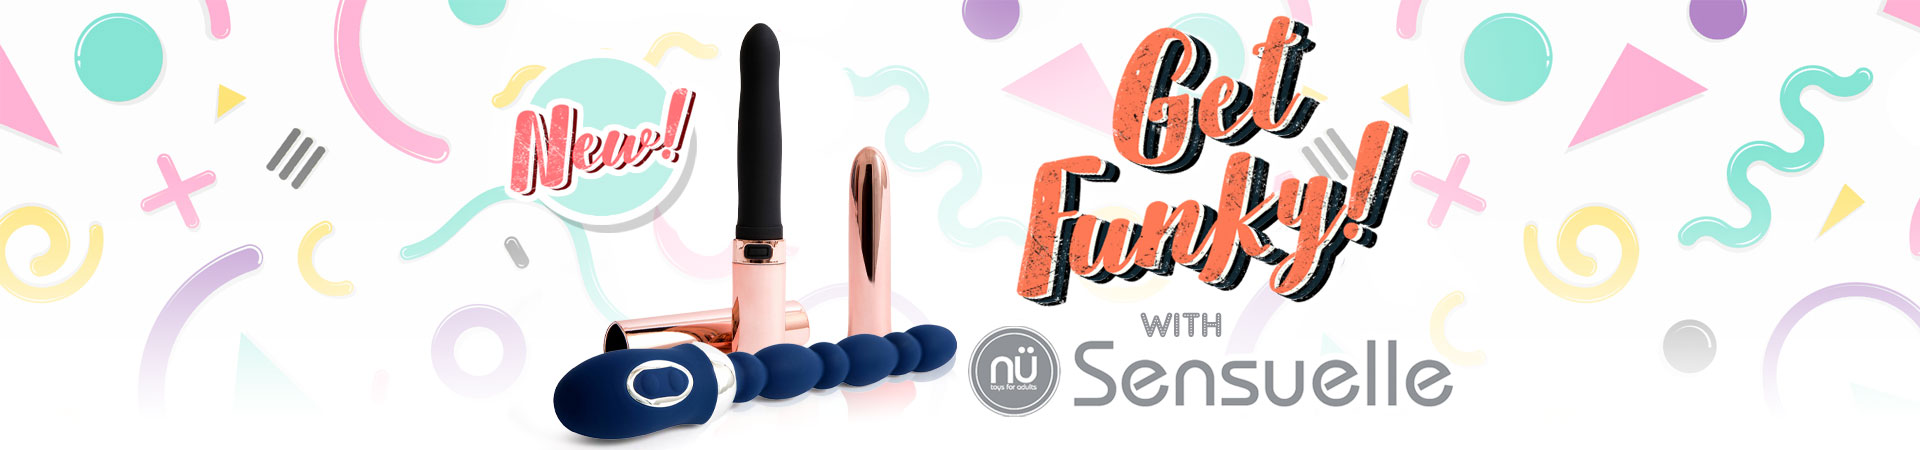 Get Funky With New Vibes From Nu Sensuelle!